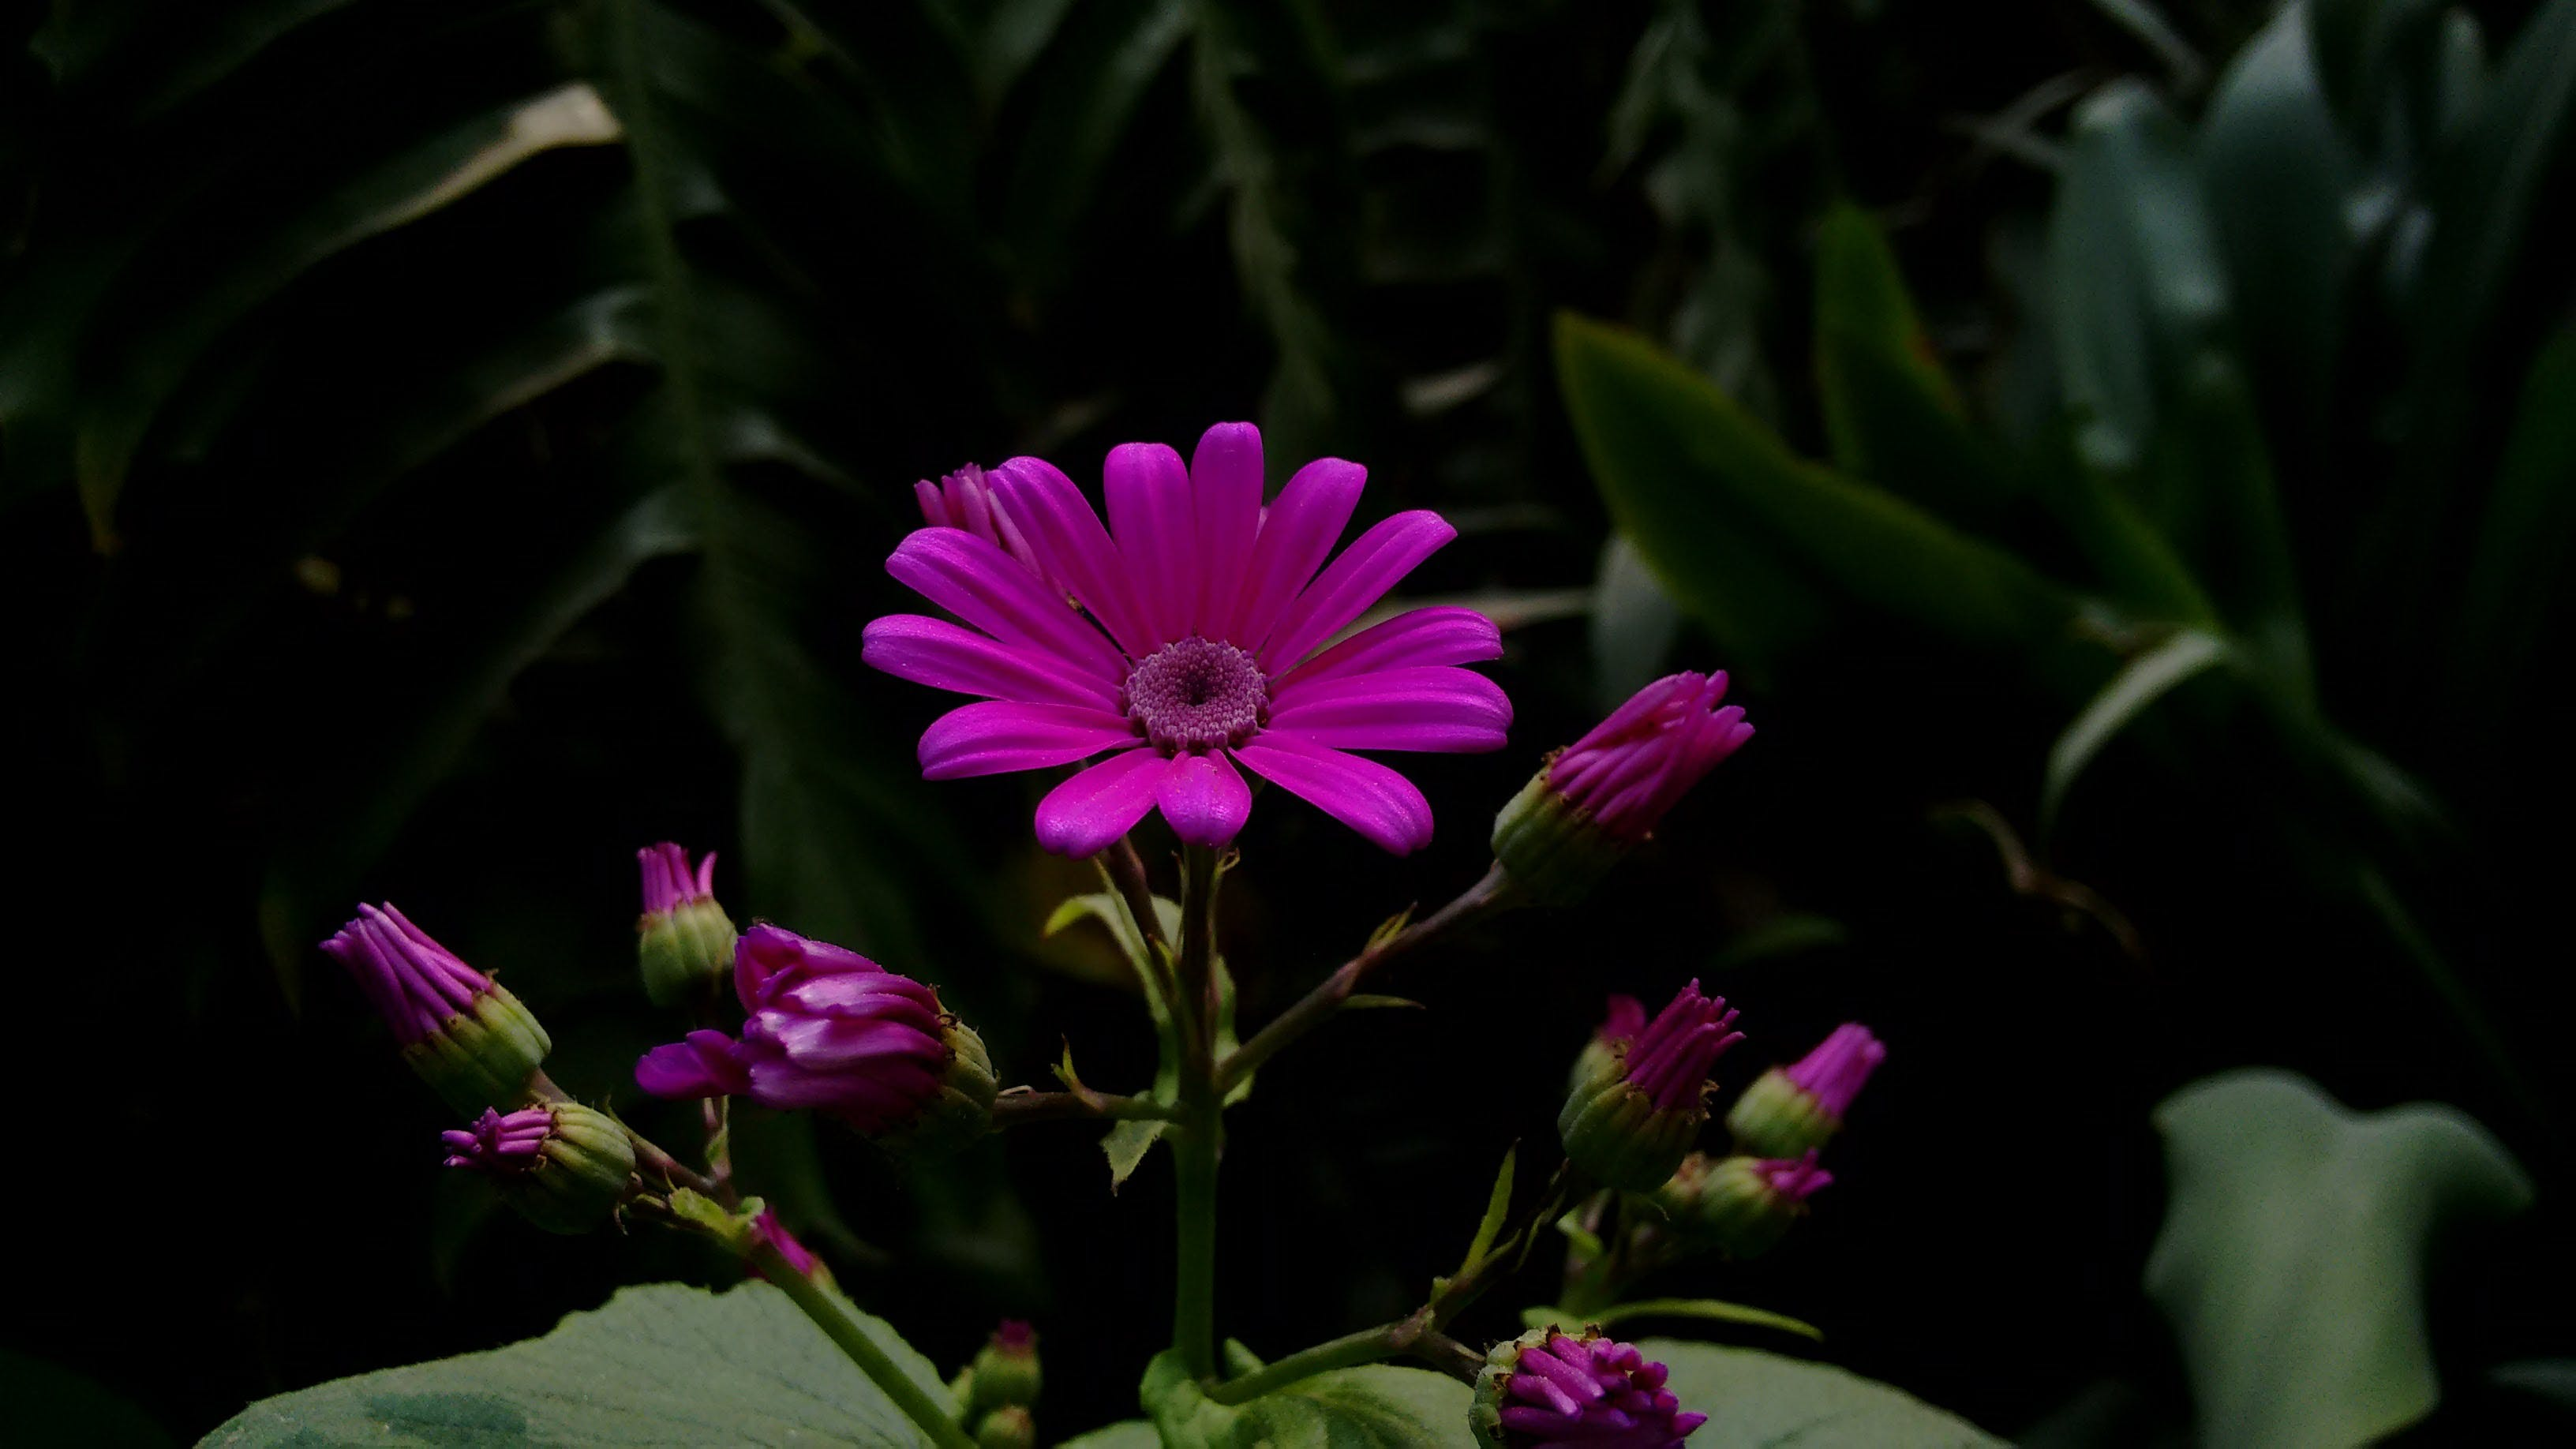 Photo of Purple Gerbera Daisy Flowers